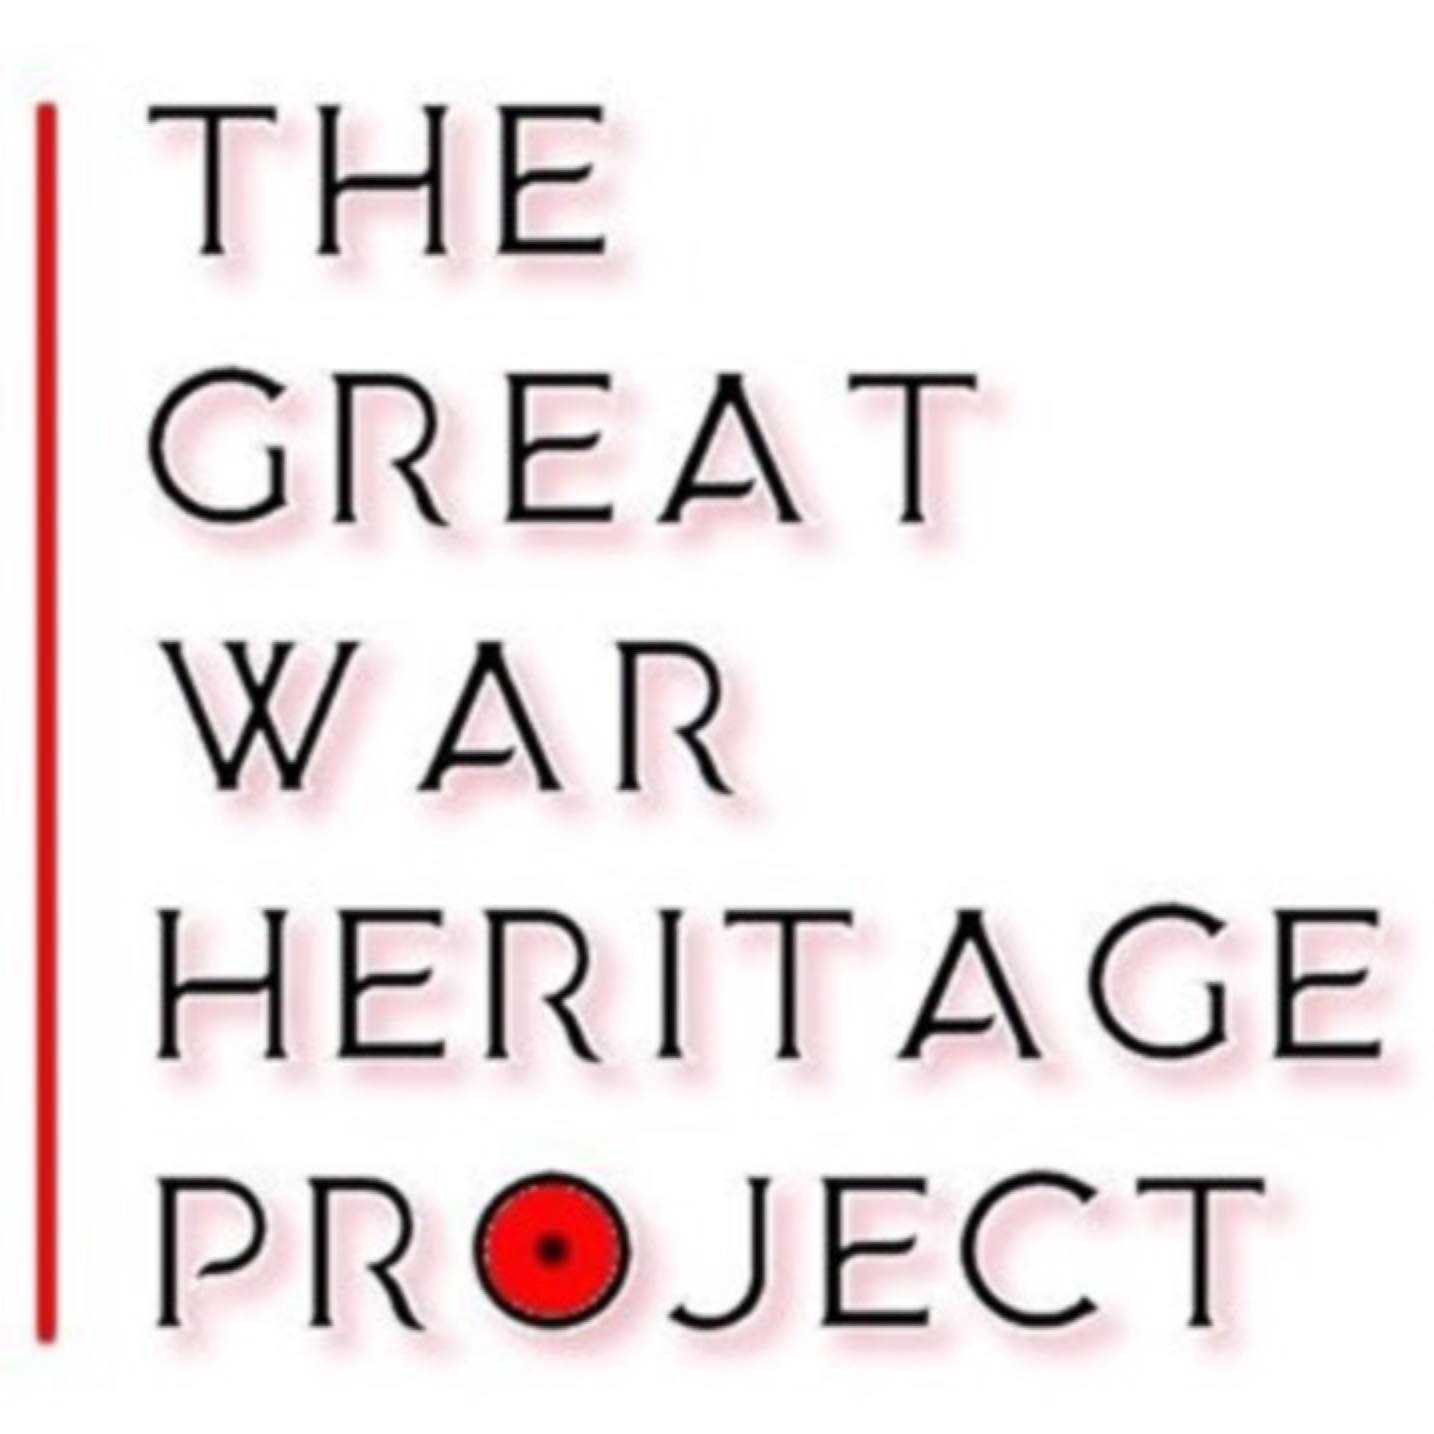 Great War Heritage Project Needs Help